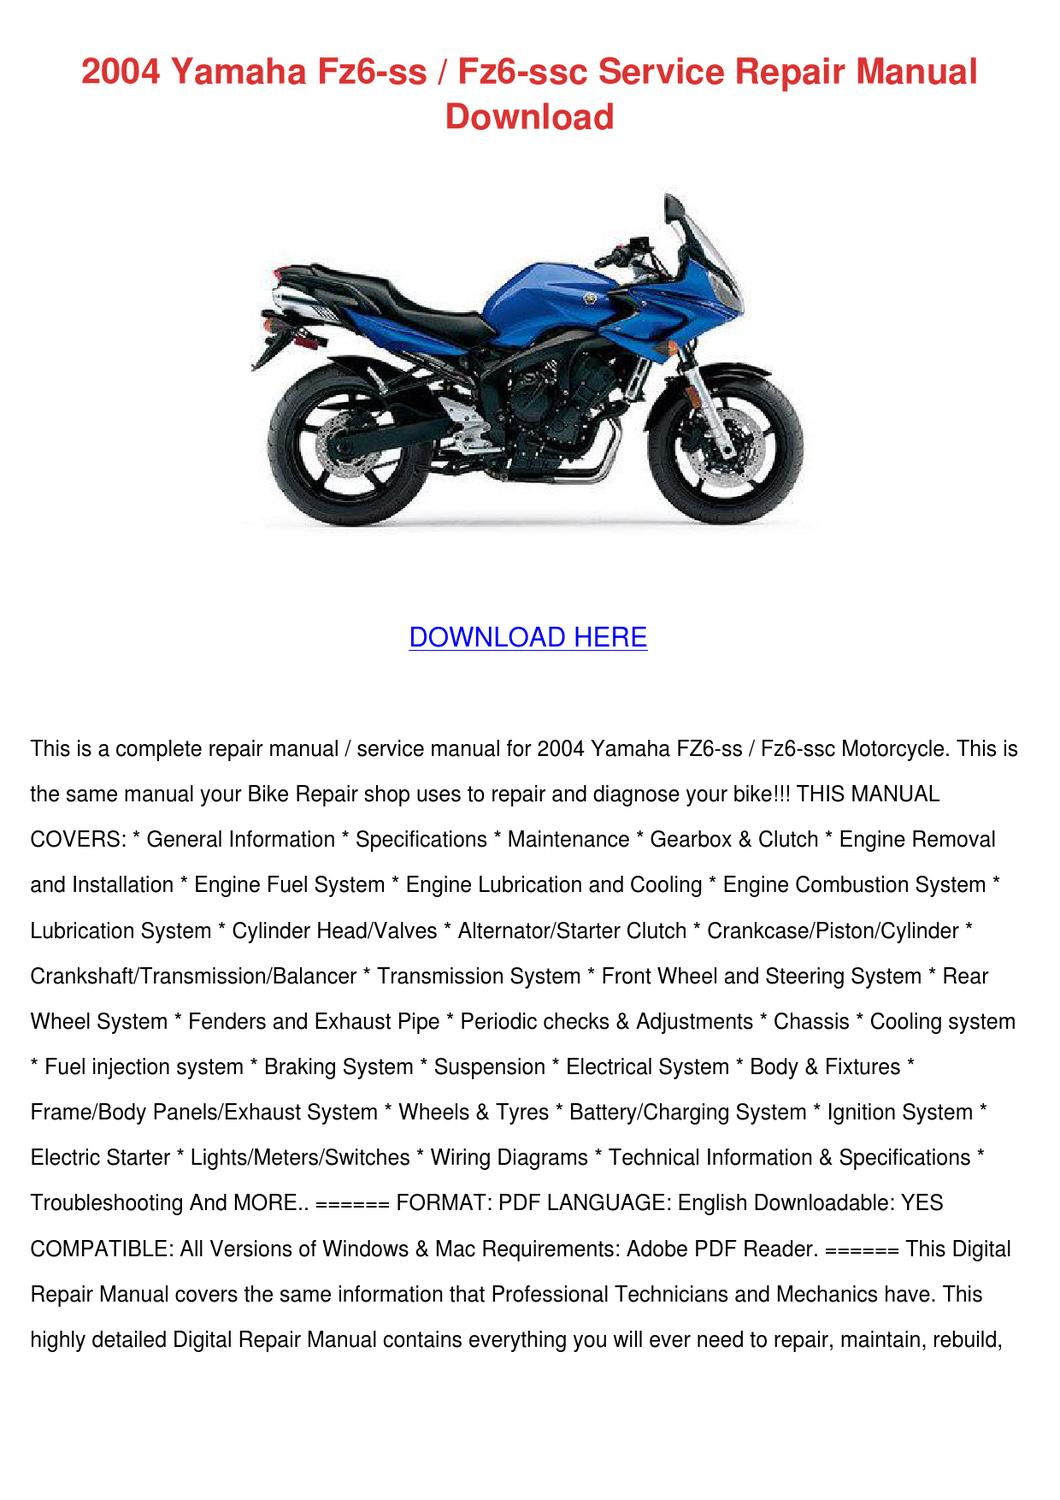 2002 Yamaha R1 Service Manual 2009 Wiring Diagram Front